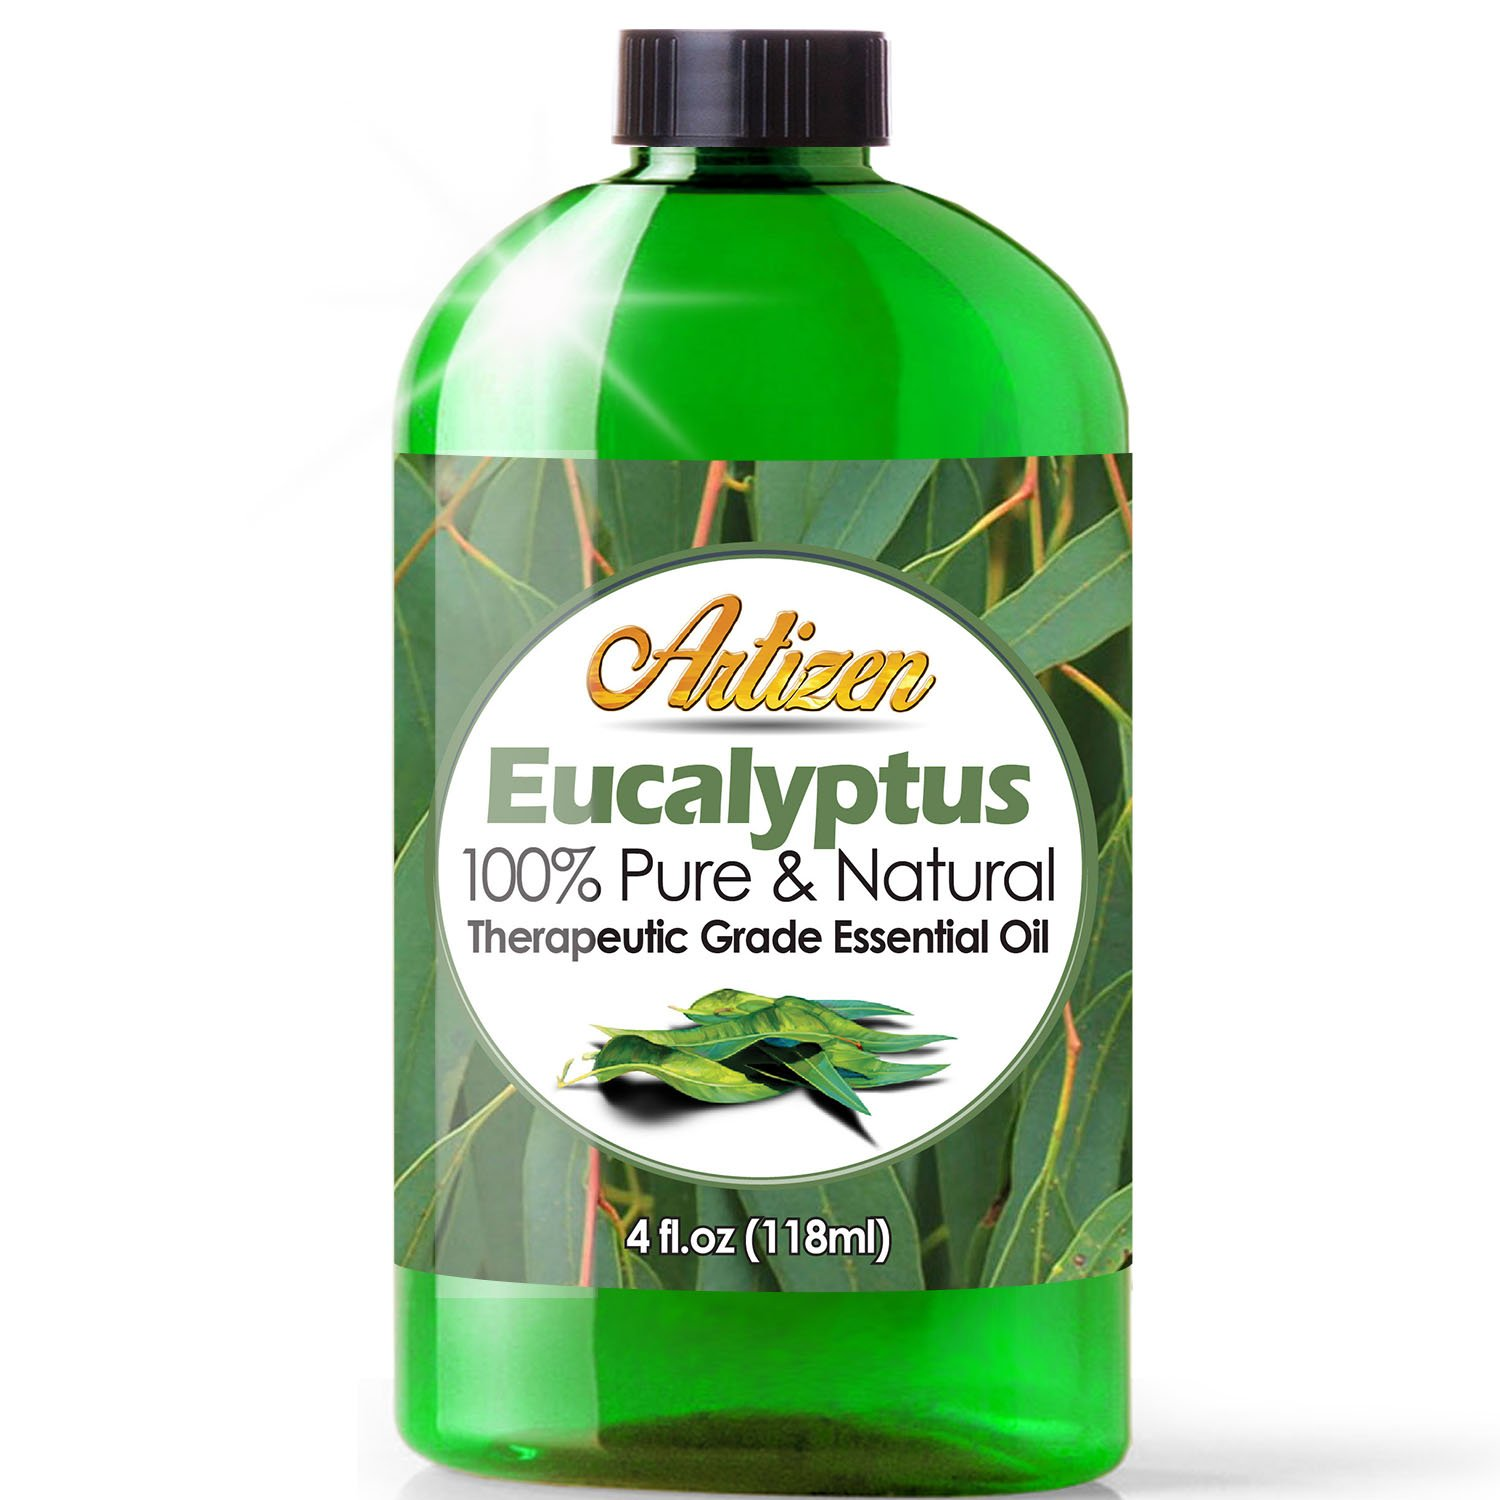 Artizen Eucalyptus Essential Oil (100% Pure & Natural - Undiluted) Therapeutic Grade - Huge 4oz Bottle - Perfect for Aromatherapy, Relaxation, Skin Therapy & More!